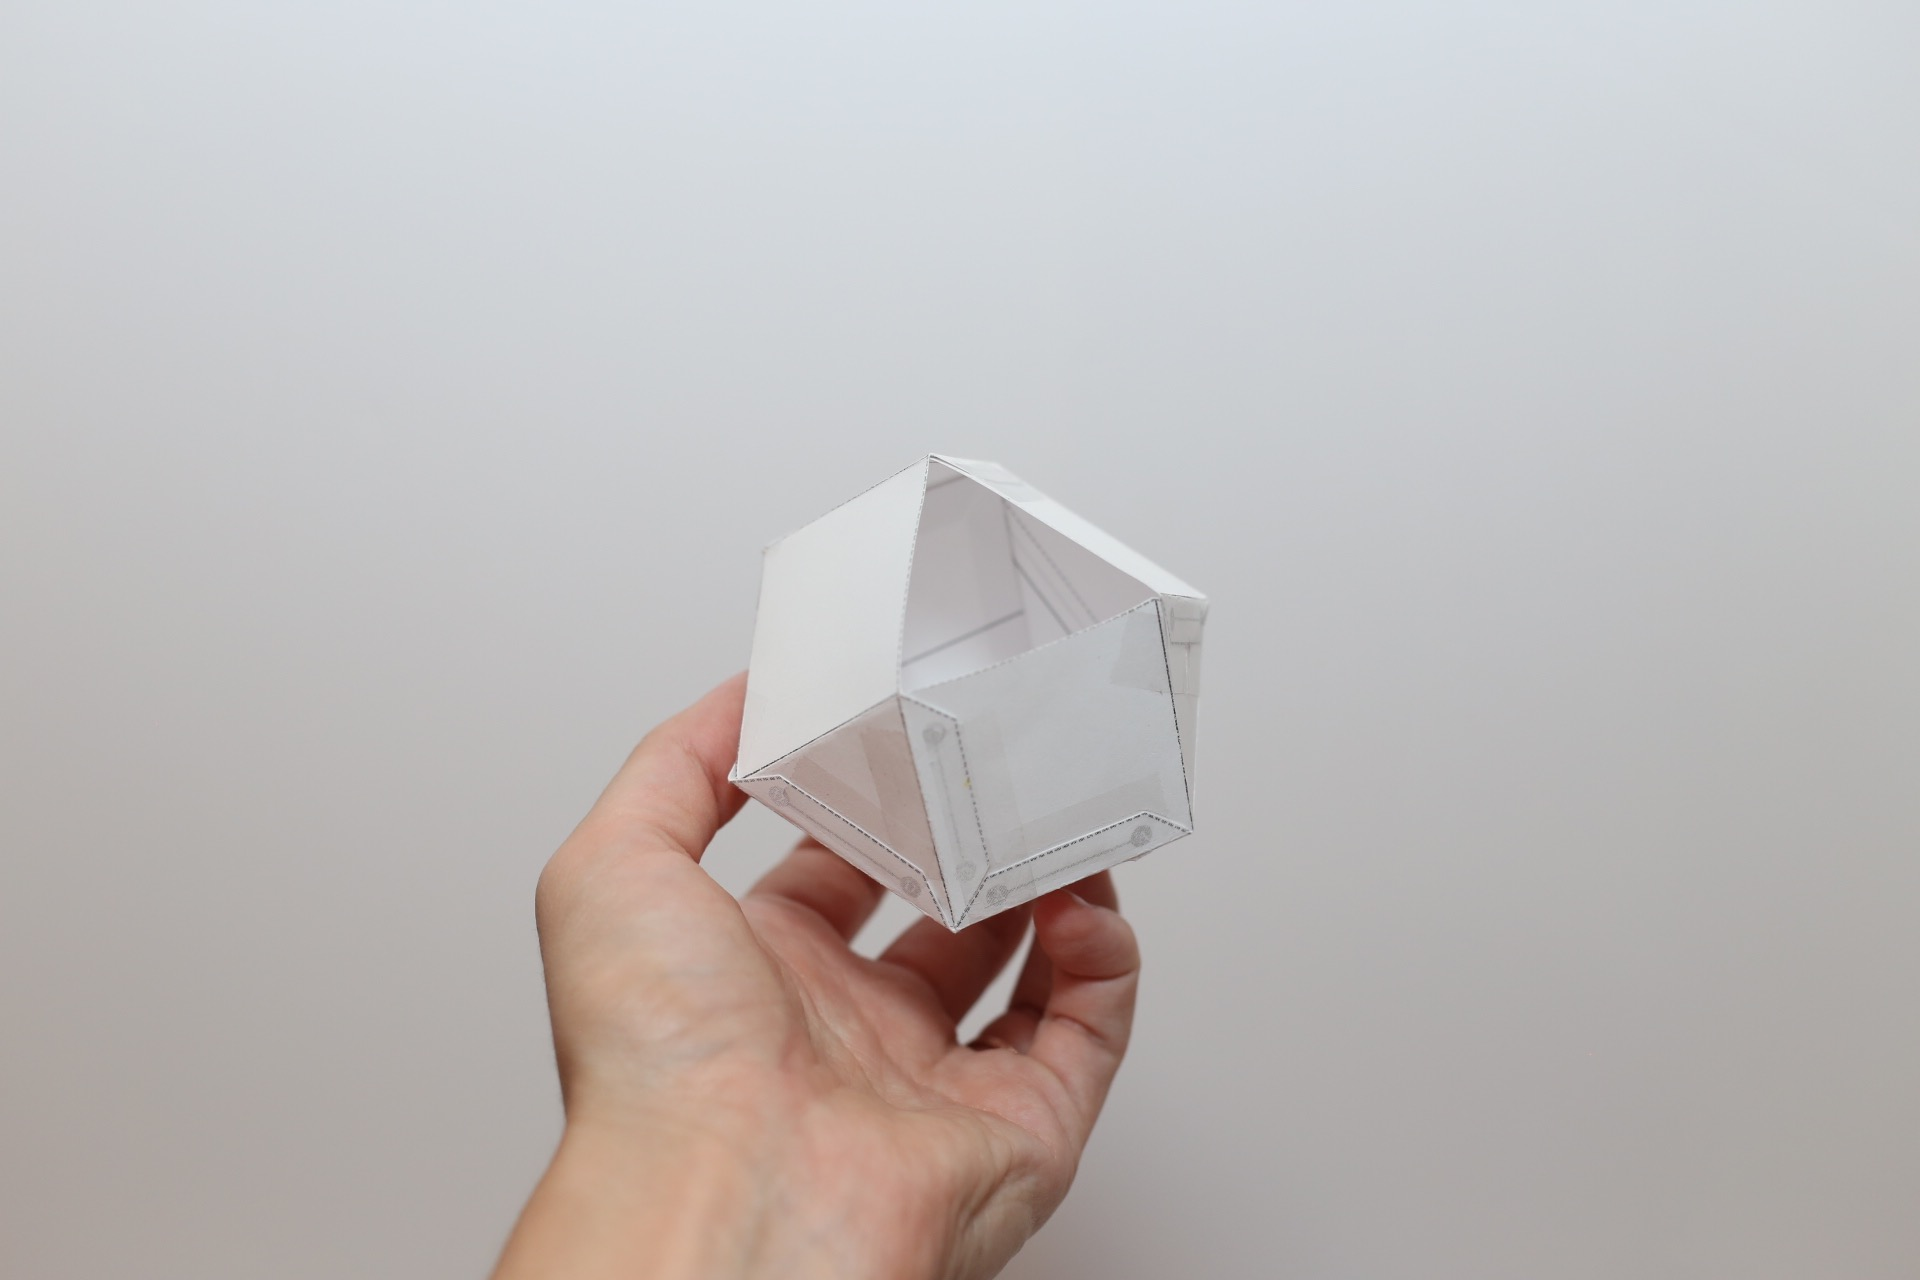 finished geometric shaped template for candle making